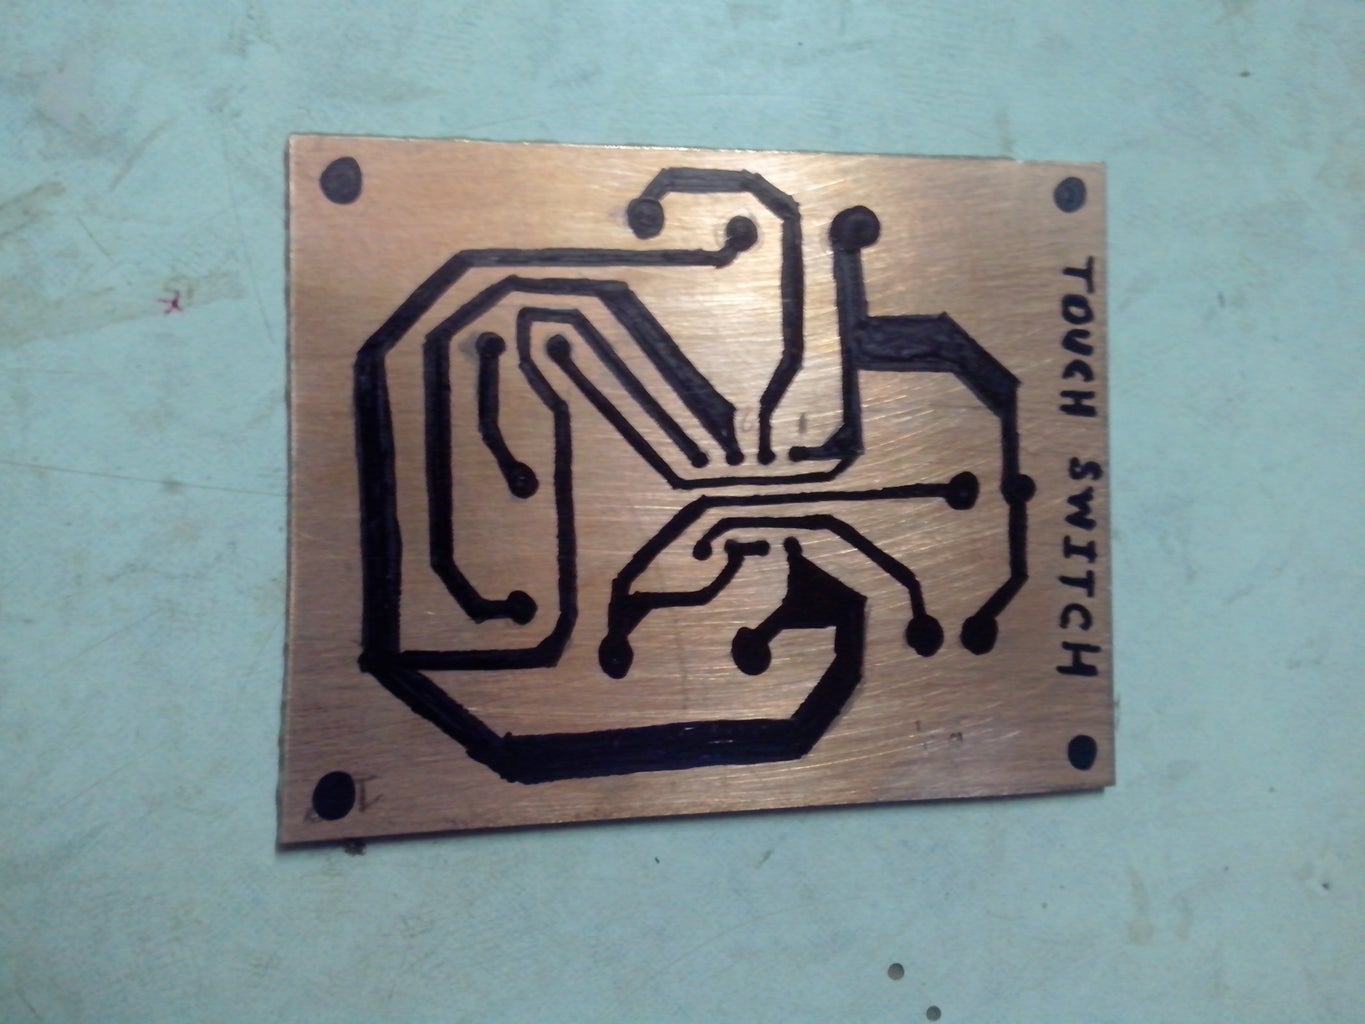 How to Make PCB at Home